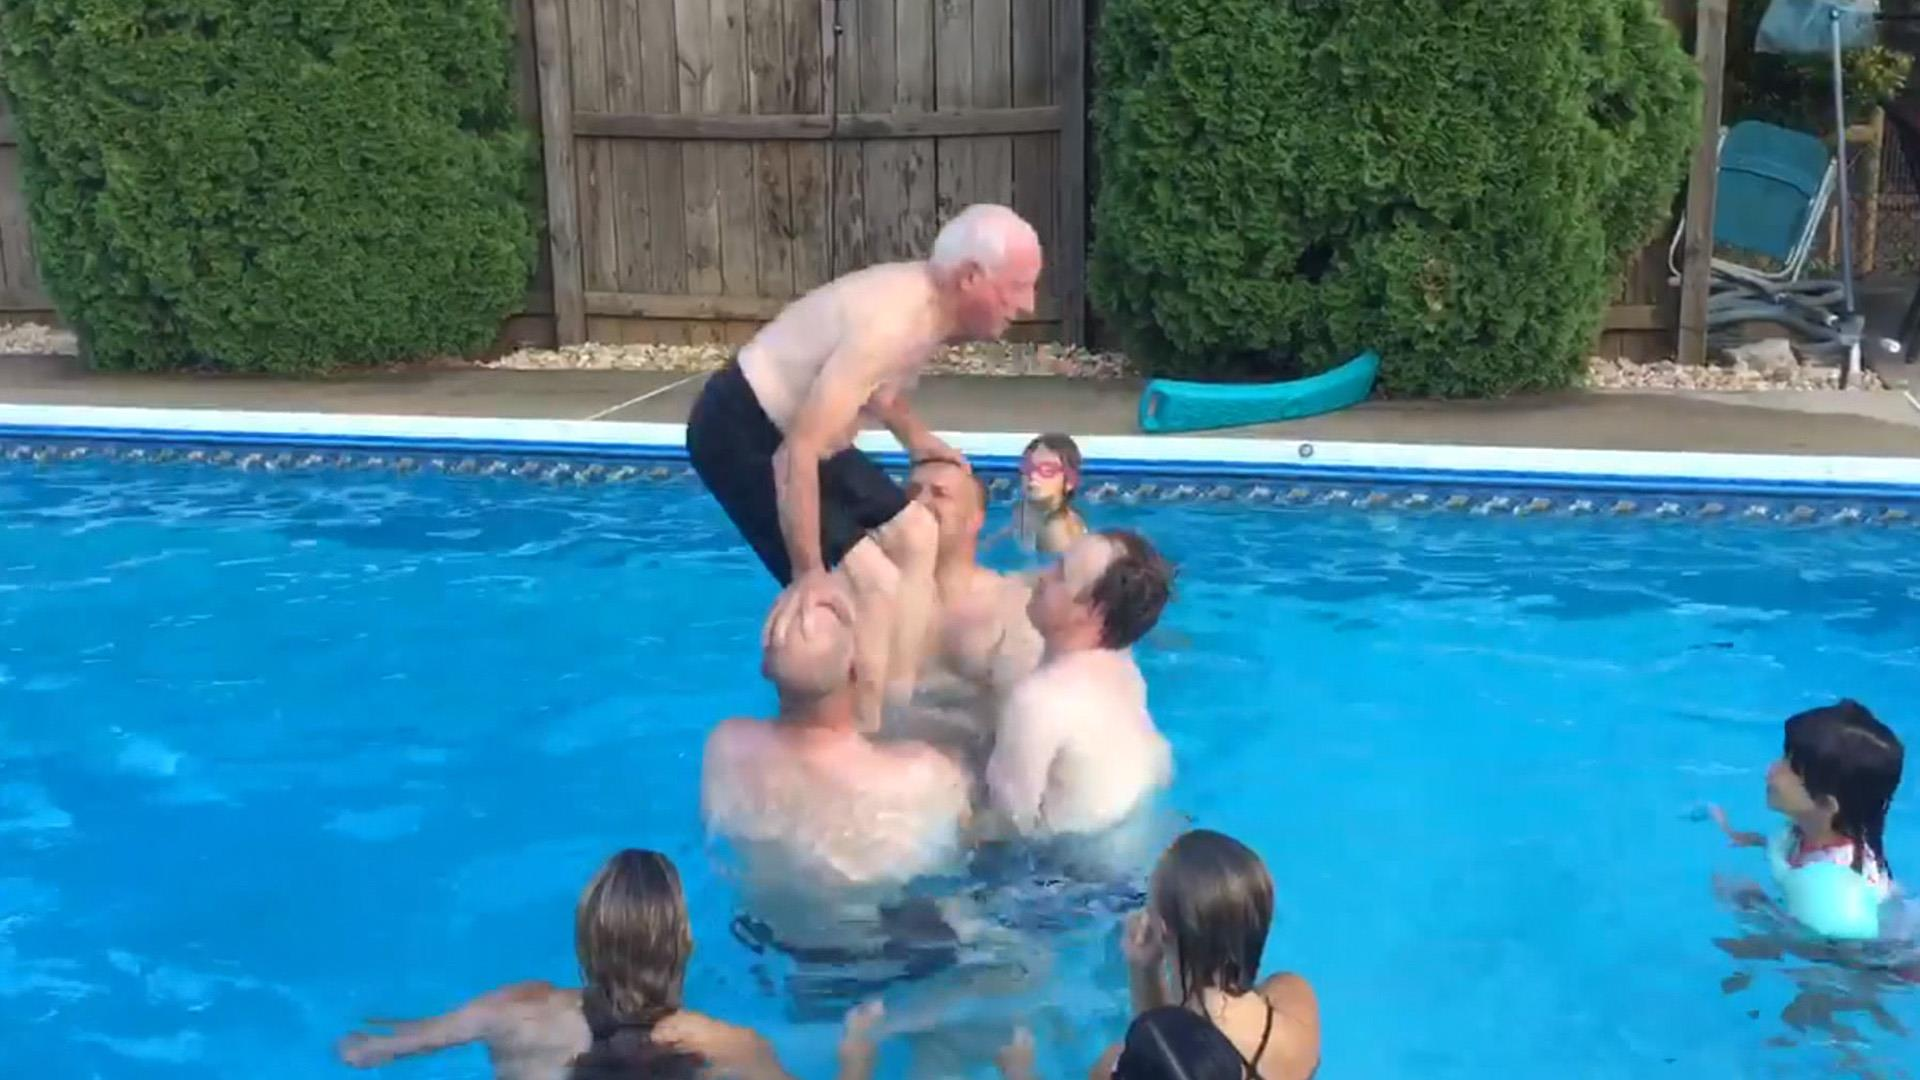 watch this year old grandpa do a backflip into swimming pool watch this 79 year old grandpa do a backflip into swimming pool com